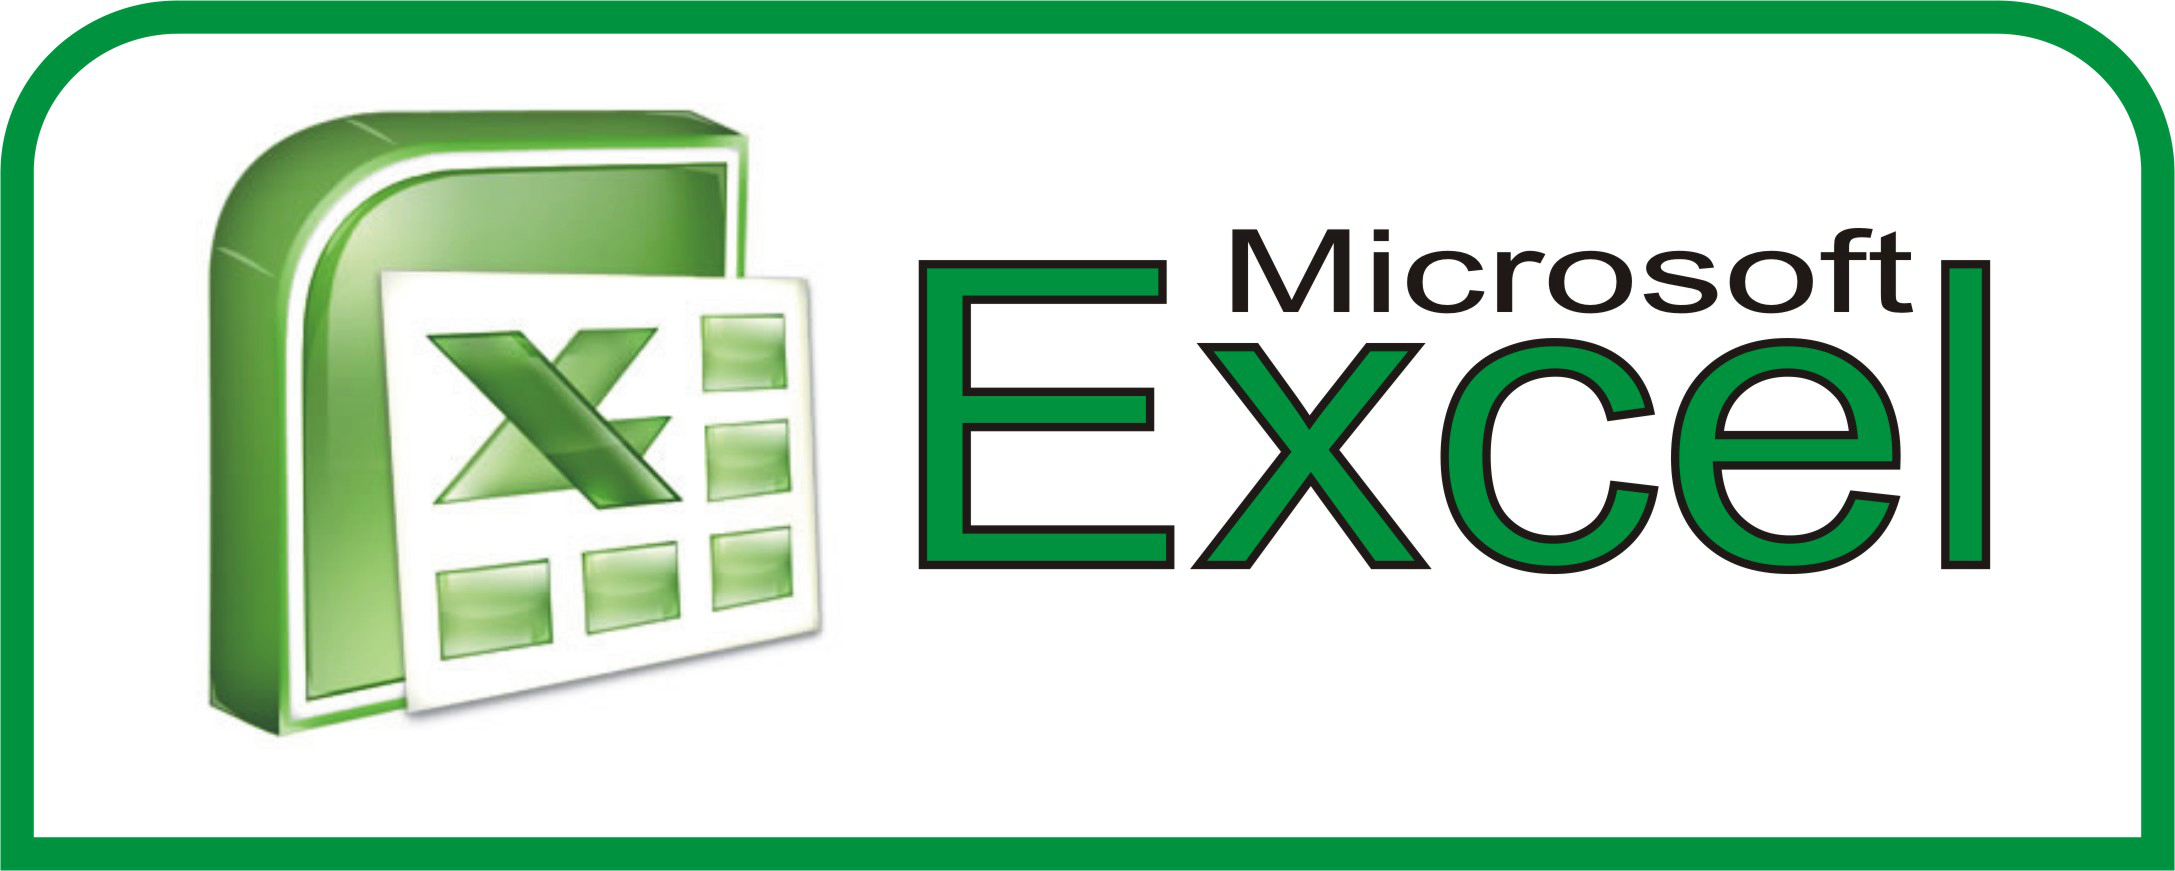 Ediblewildsus  Scenic  Excel Shortcuts You Probably Didnt Know About  Techdissected With Entrancing Time Series Chart Excel Besides Excel Break Mode Furthermore Multiple Regression Analysis In Excel With Awesome Compare Two Excel Workbooks Also Excel Developer Tab  In Addition Excel Custom Autofilter And Excel  Date Functions As Well As Converting Text To Excel Additionally Excel Simple Formulas From Techdissectedcom With Ediblewildsus  Entrancing  Excel Shortcuts You Probably Didnt Know About  Techdissected With Awesome Time Series Chart Excel Besides Excel Break Mode Furthermore Multiple Regression Analysis In Excel And Scenic Compare Two Excel Workbooks Also Excel Developer Tab  In Addition Excel Custom Autofilter From Techdissectedcom